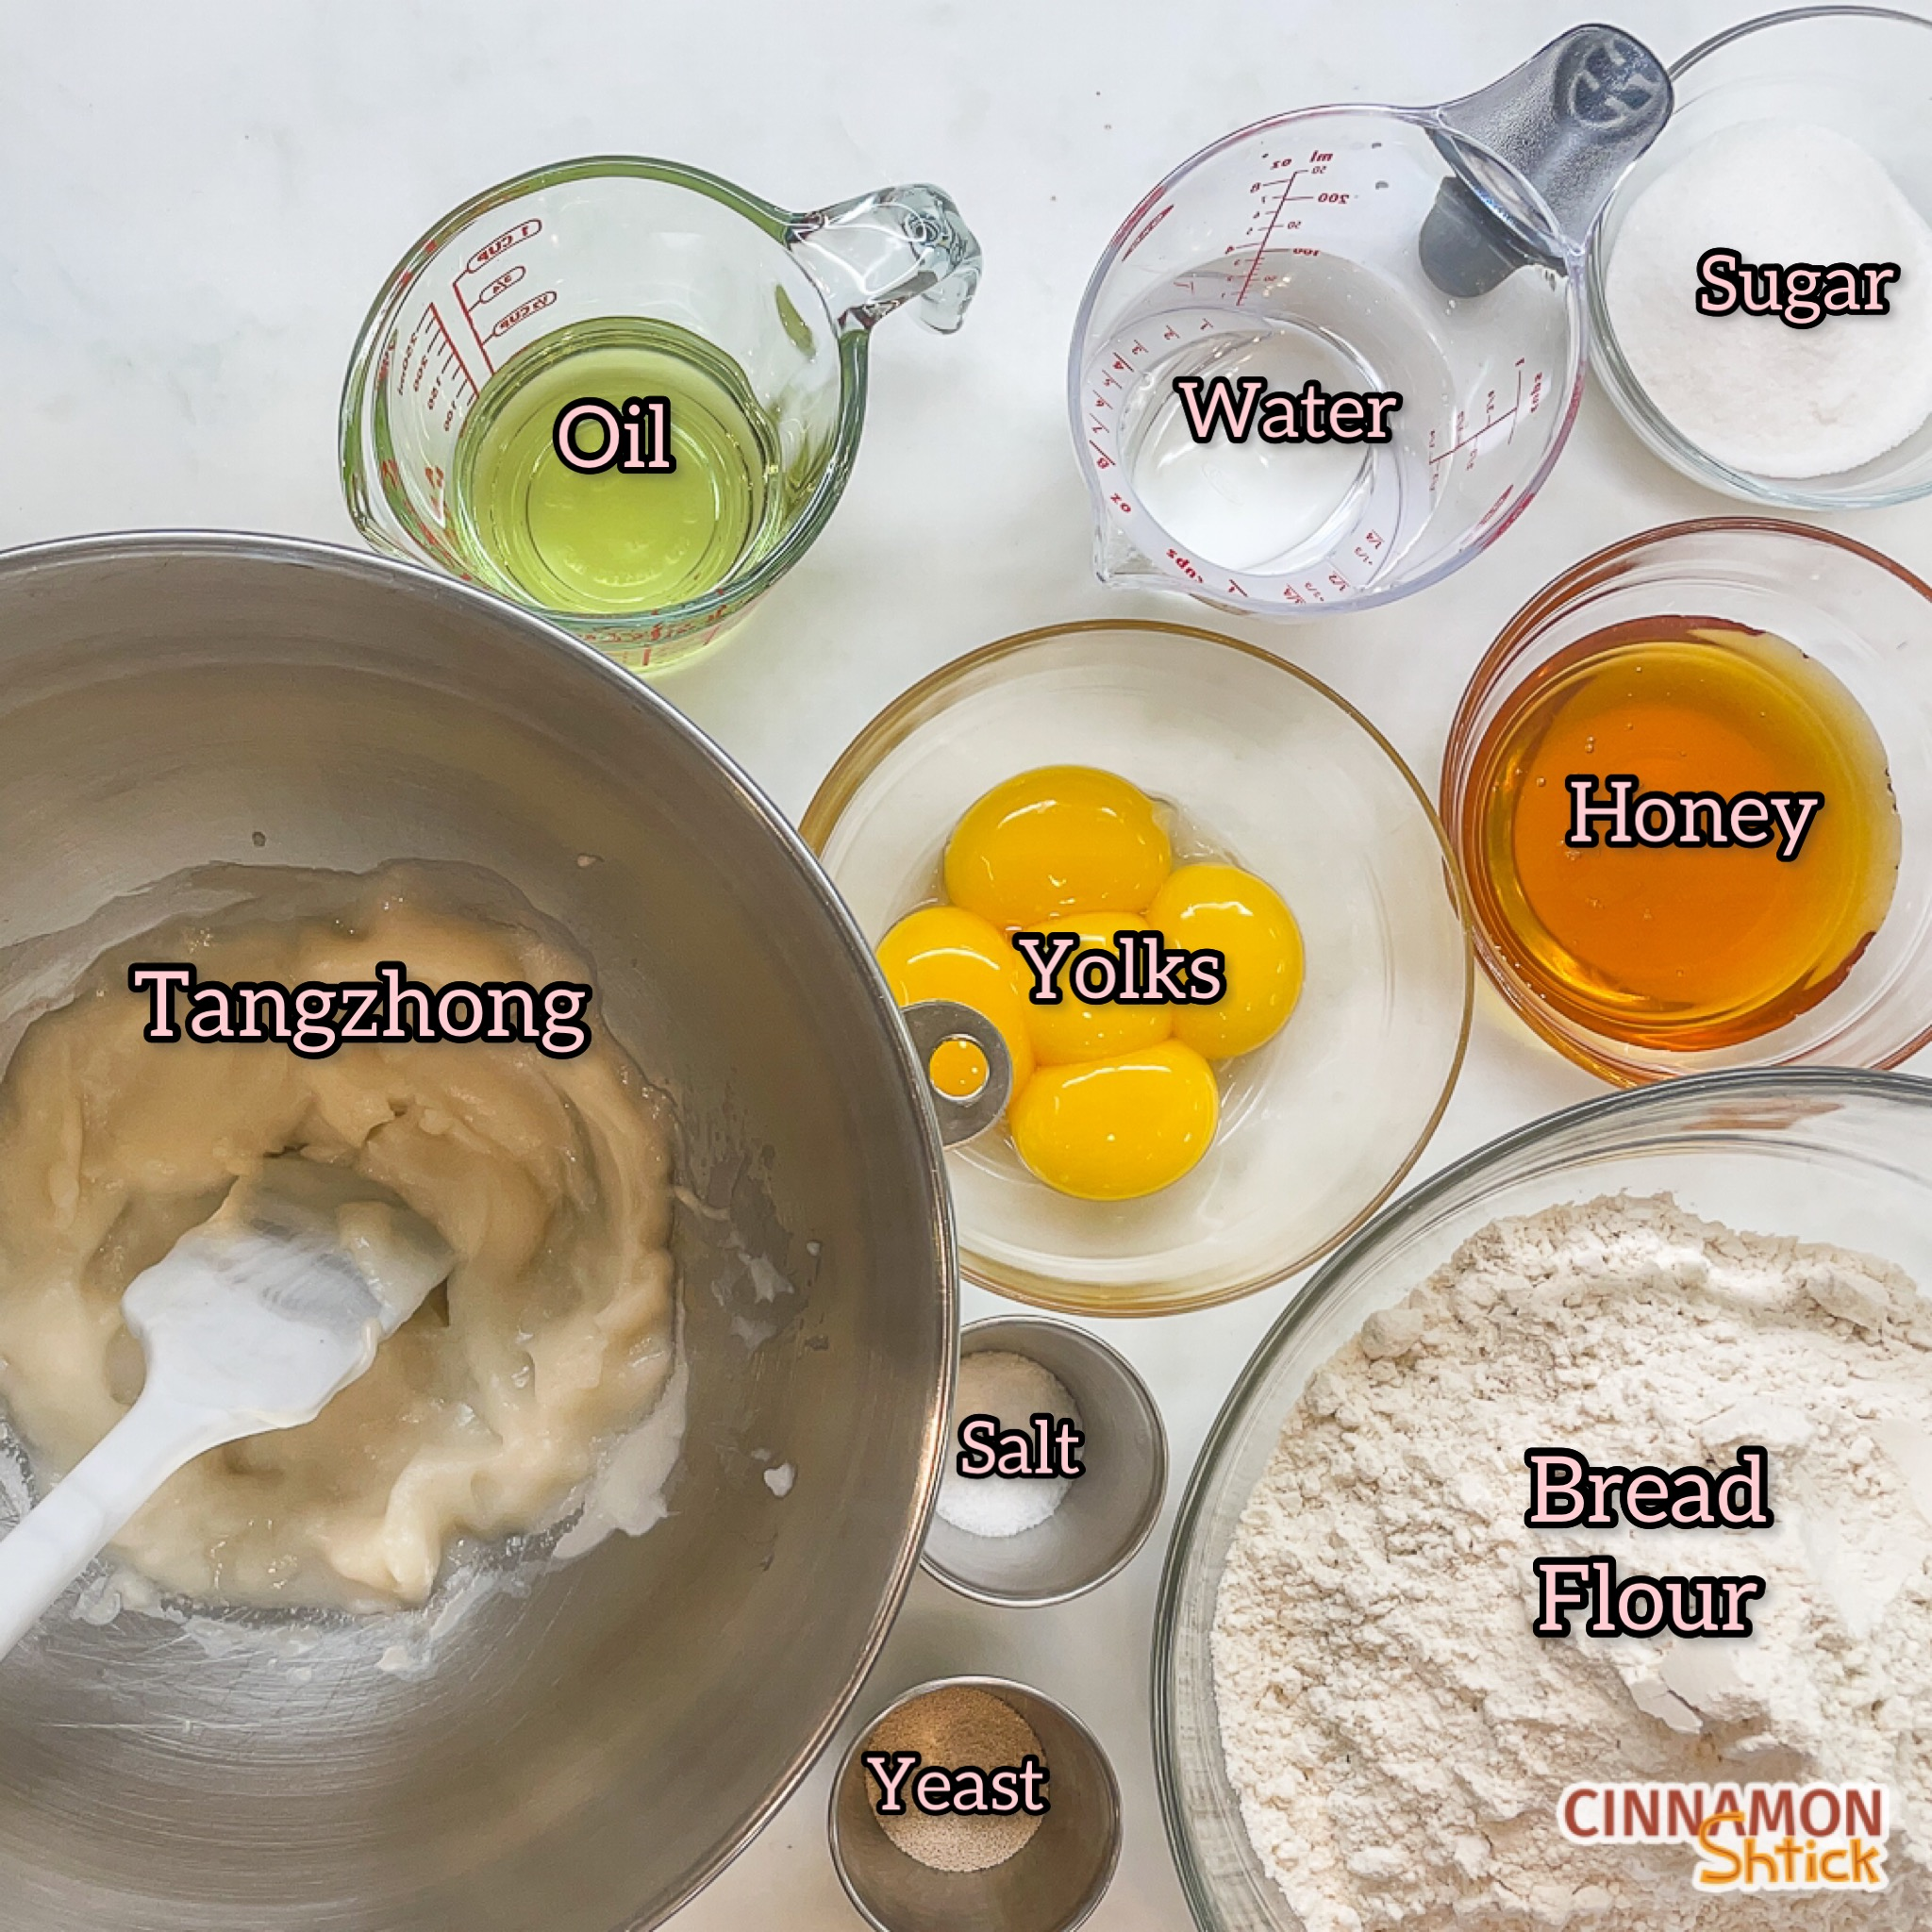 tangzhong in mixing bowl together with cups and bowls holding the rest of the challah ingredients, with each labeled as oil, water, sugar, honey, yolks, bread flour, salt and yeast